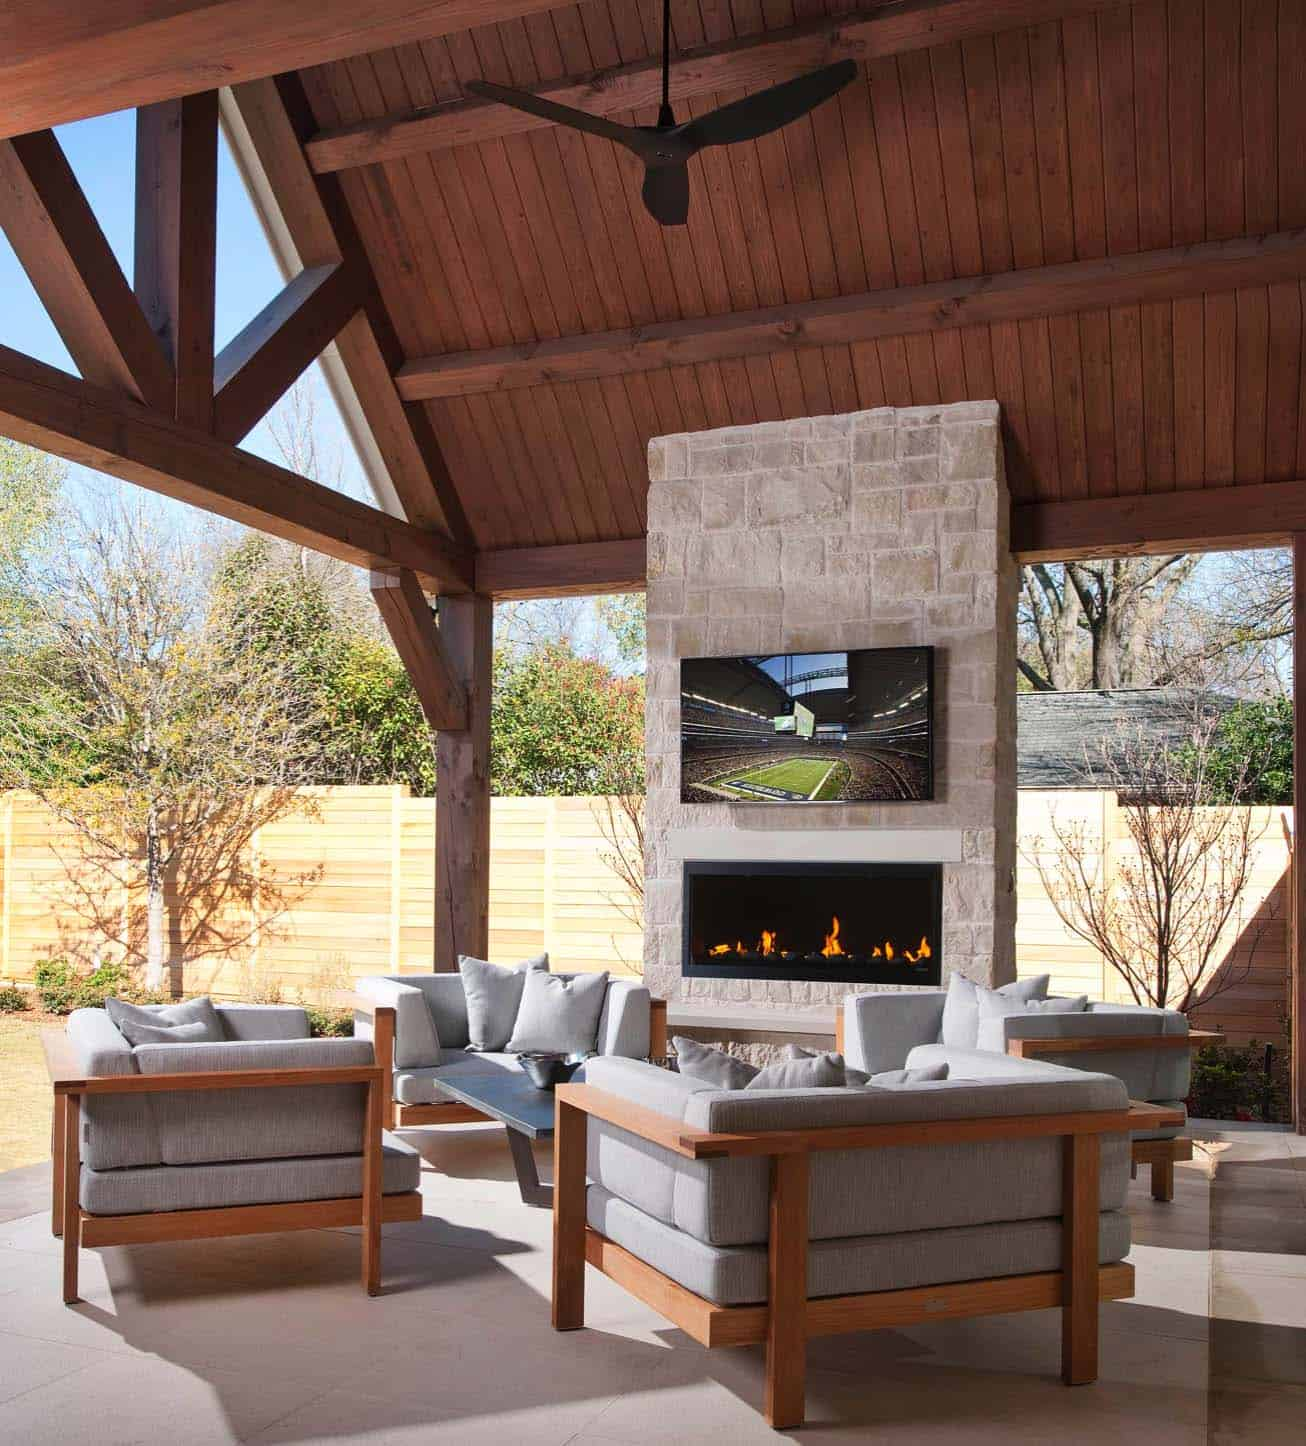 30+ Irresistible outdoor fireplace ideas that will leave ... on Outdoor Fireplaces Ideas  id=82773